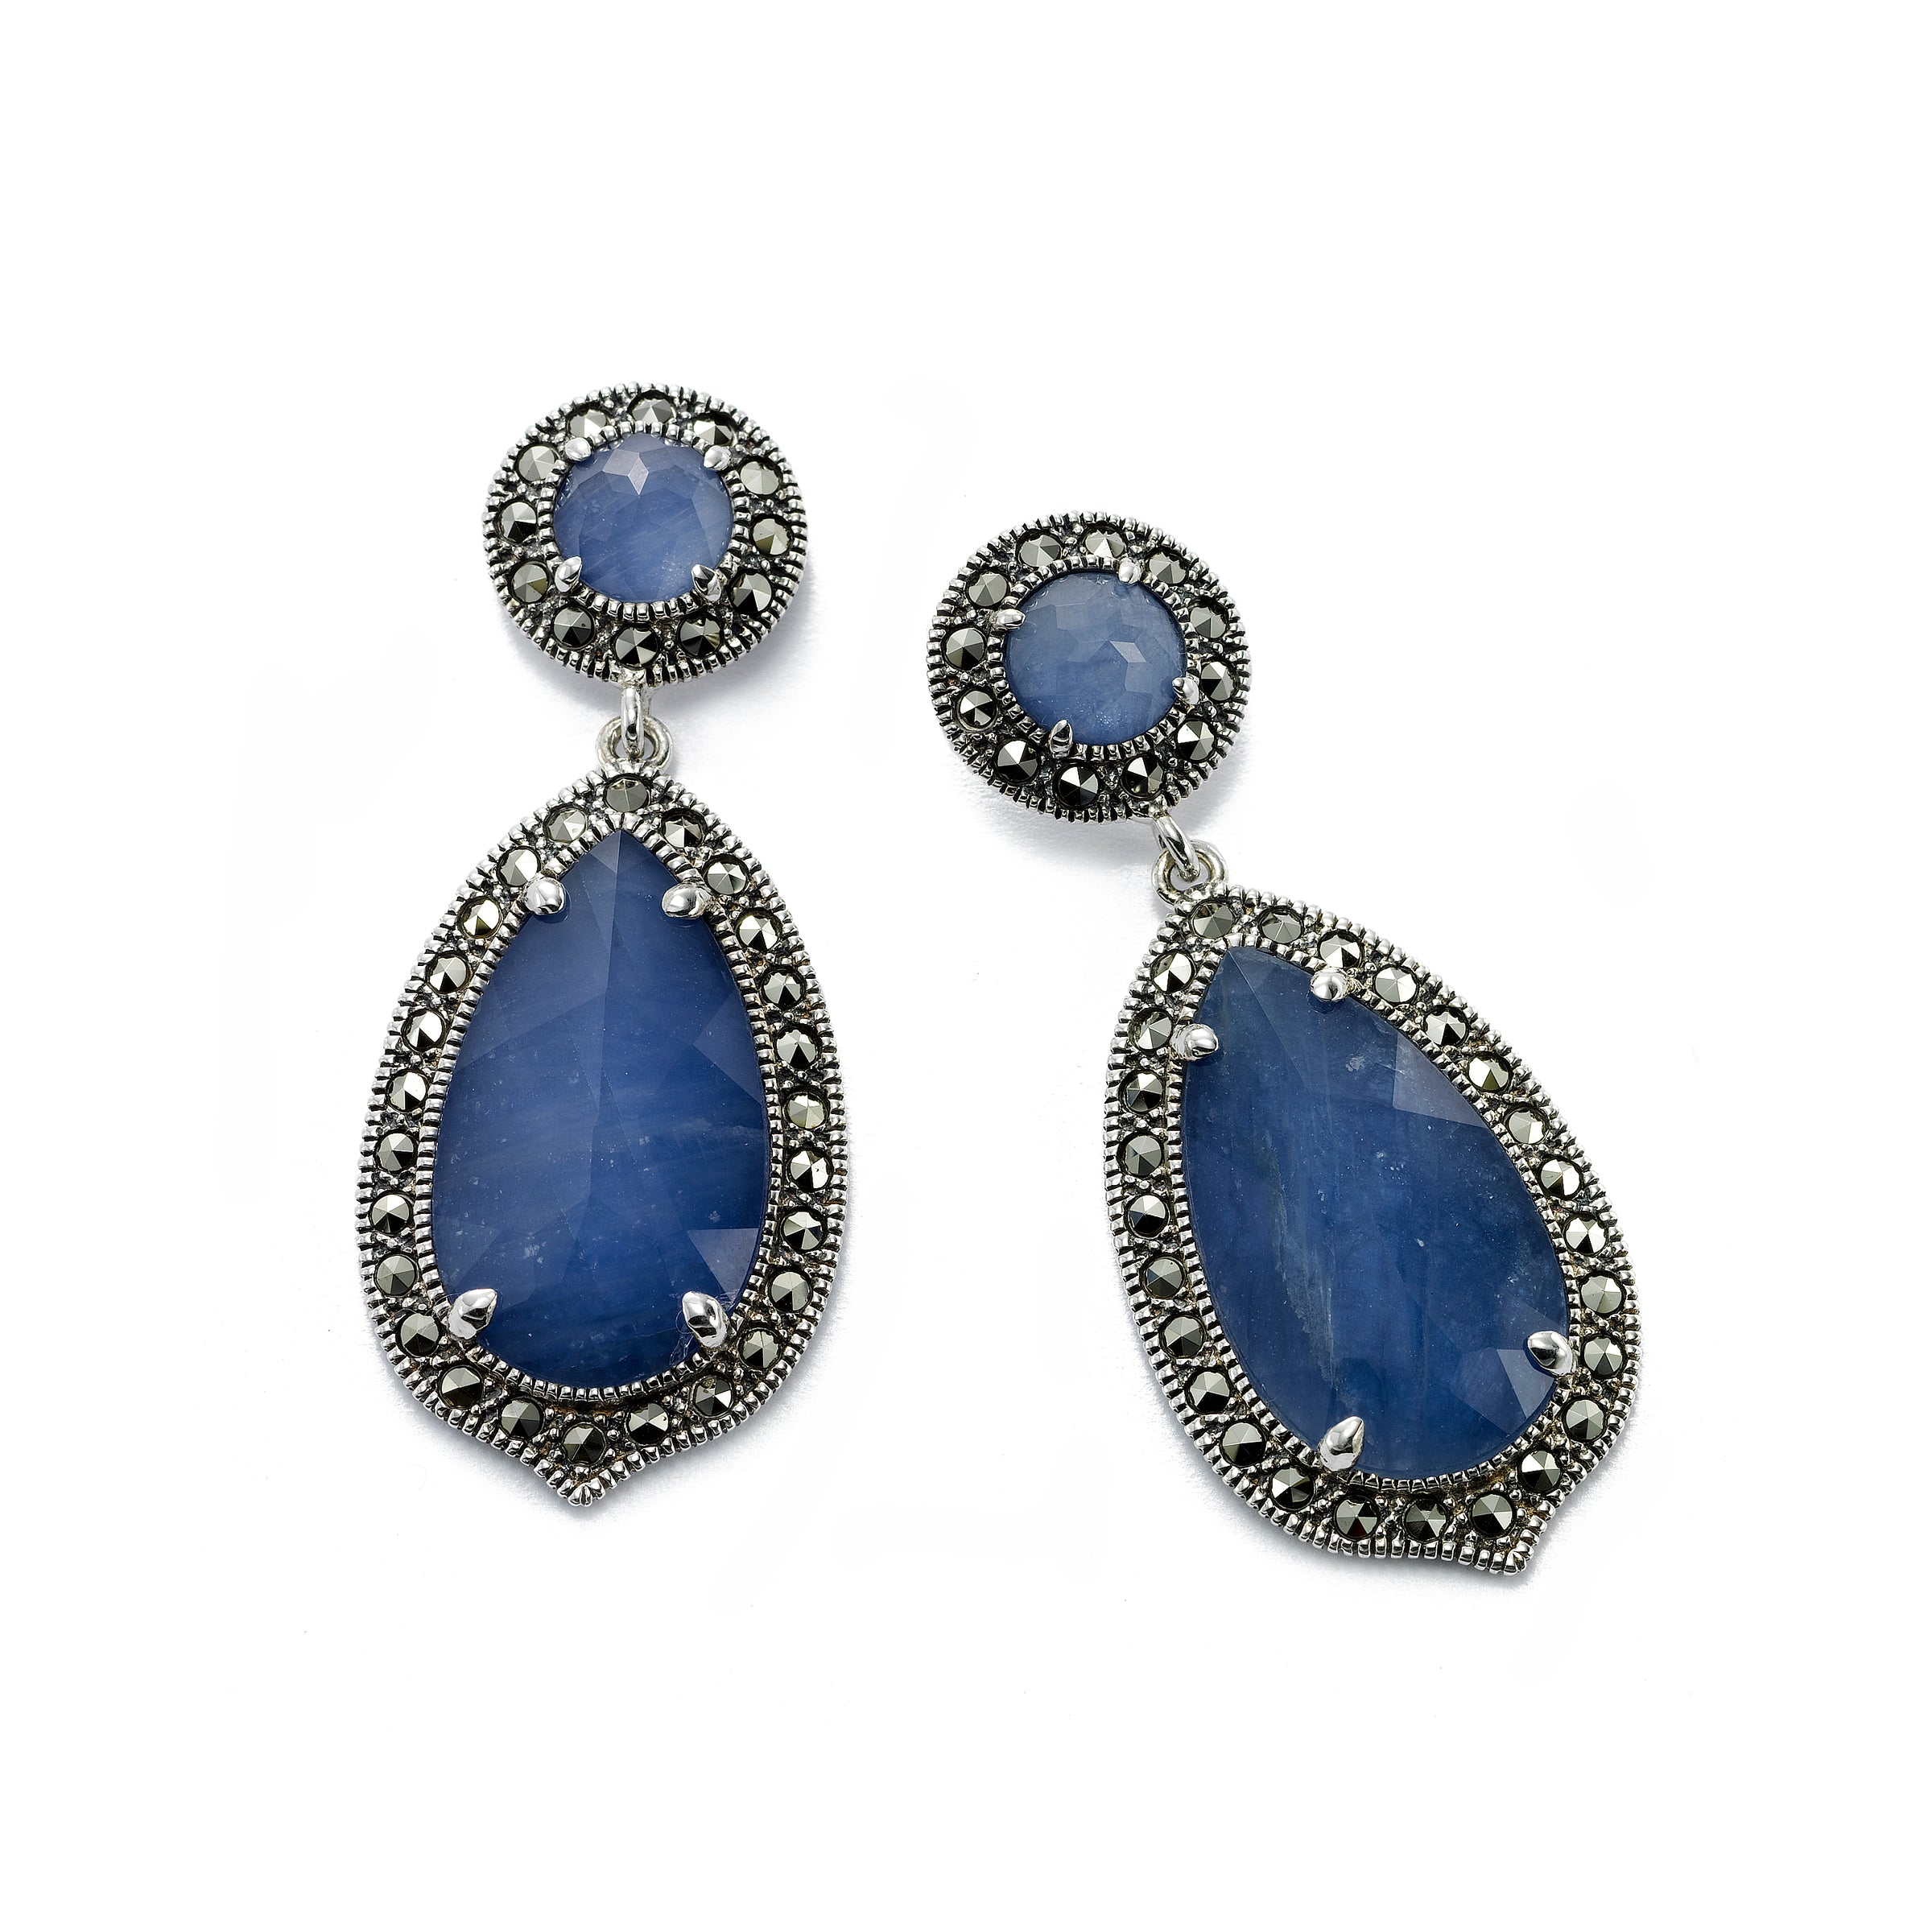 Swarovski Marcasite Earrings with Blue Sapphire Slices, Sterling Silver